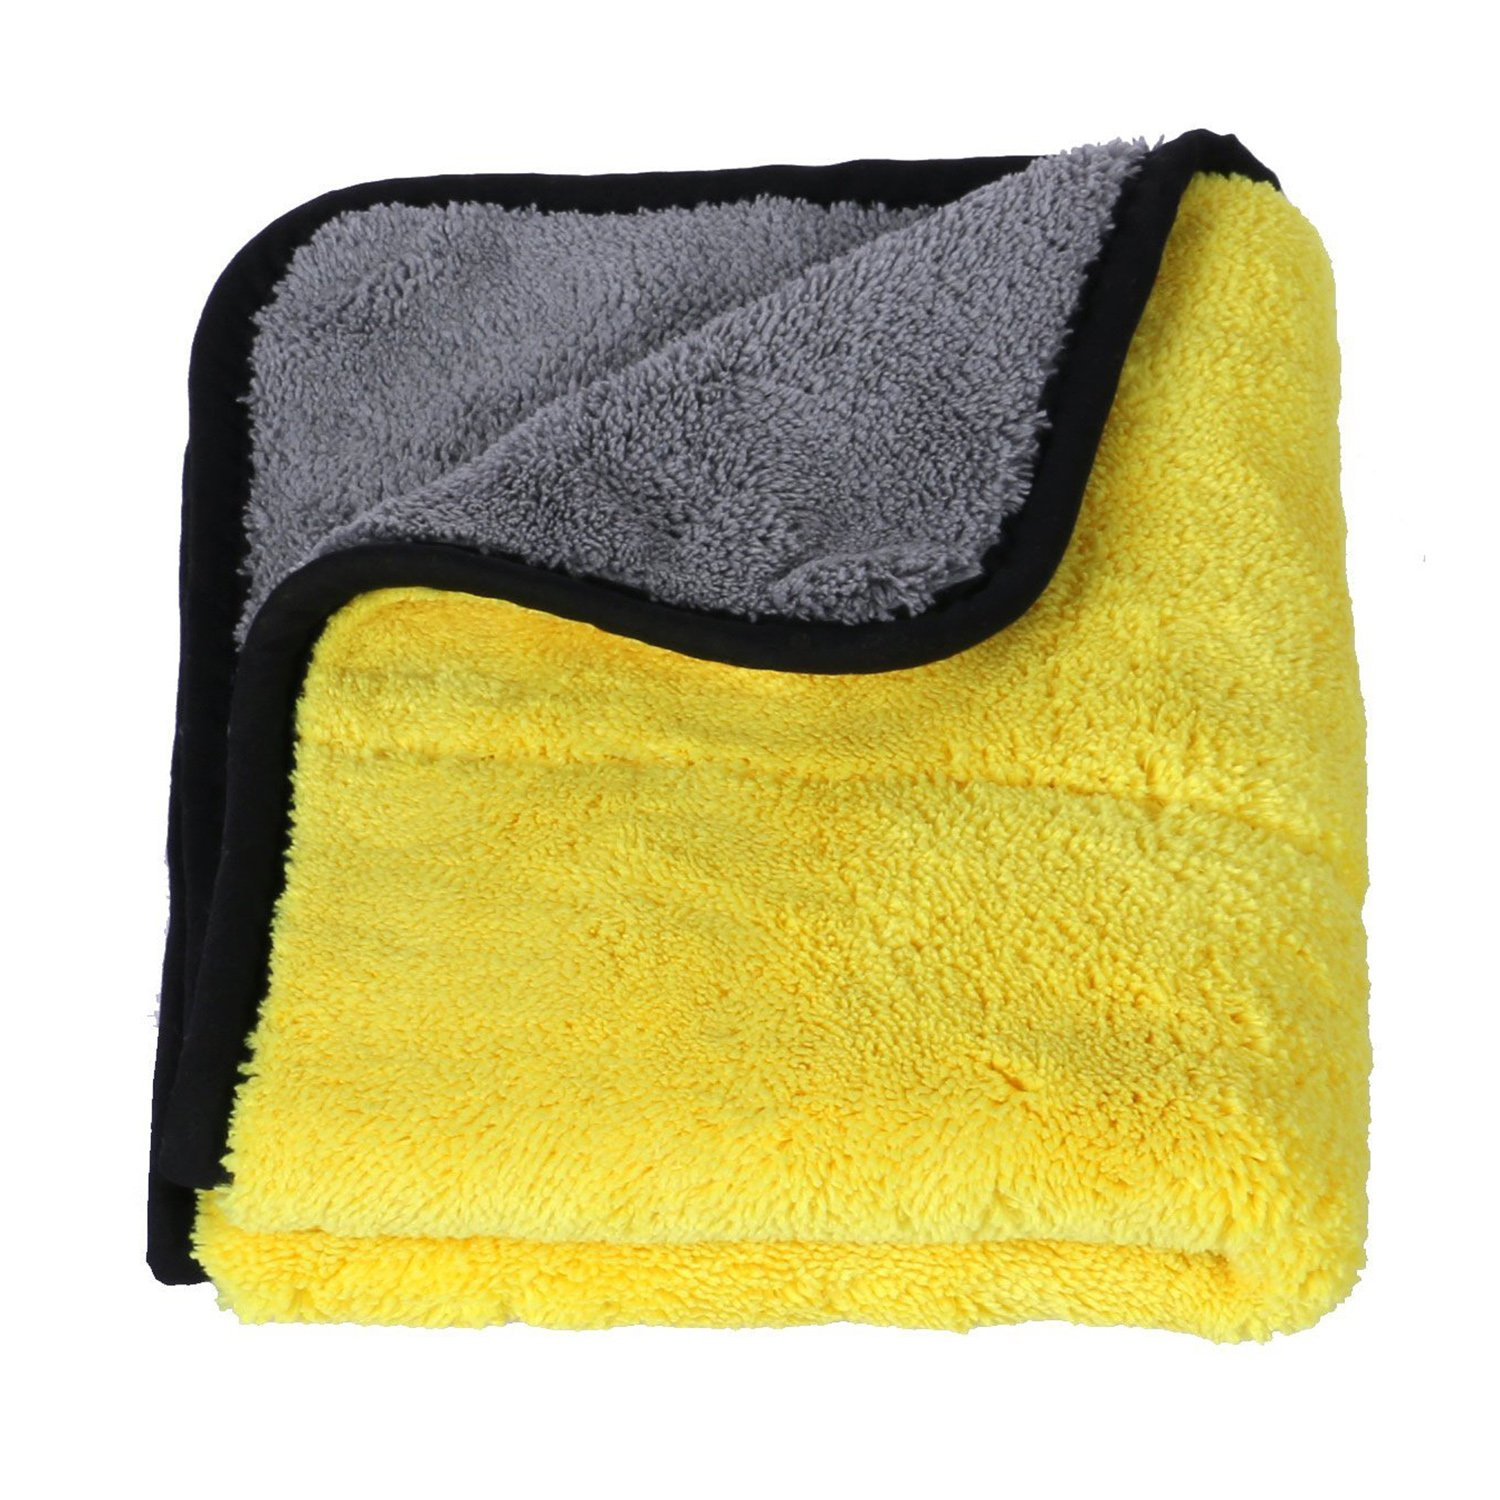 16 x 16 Auto Drying Towel for Car Care Polishing Washing Waxing Dusting and Detailing Faireach Microfibre Car Cleaning Cloths Set of 4